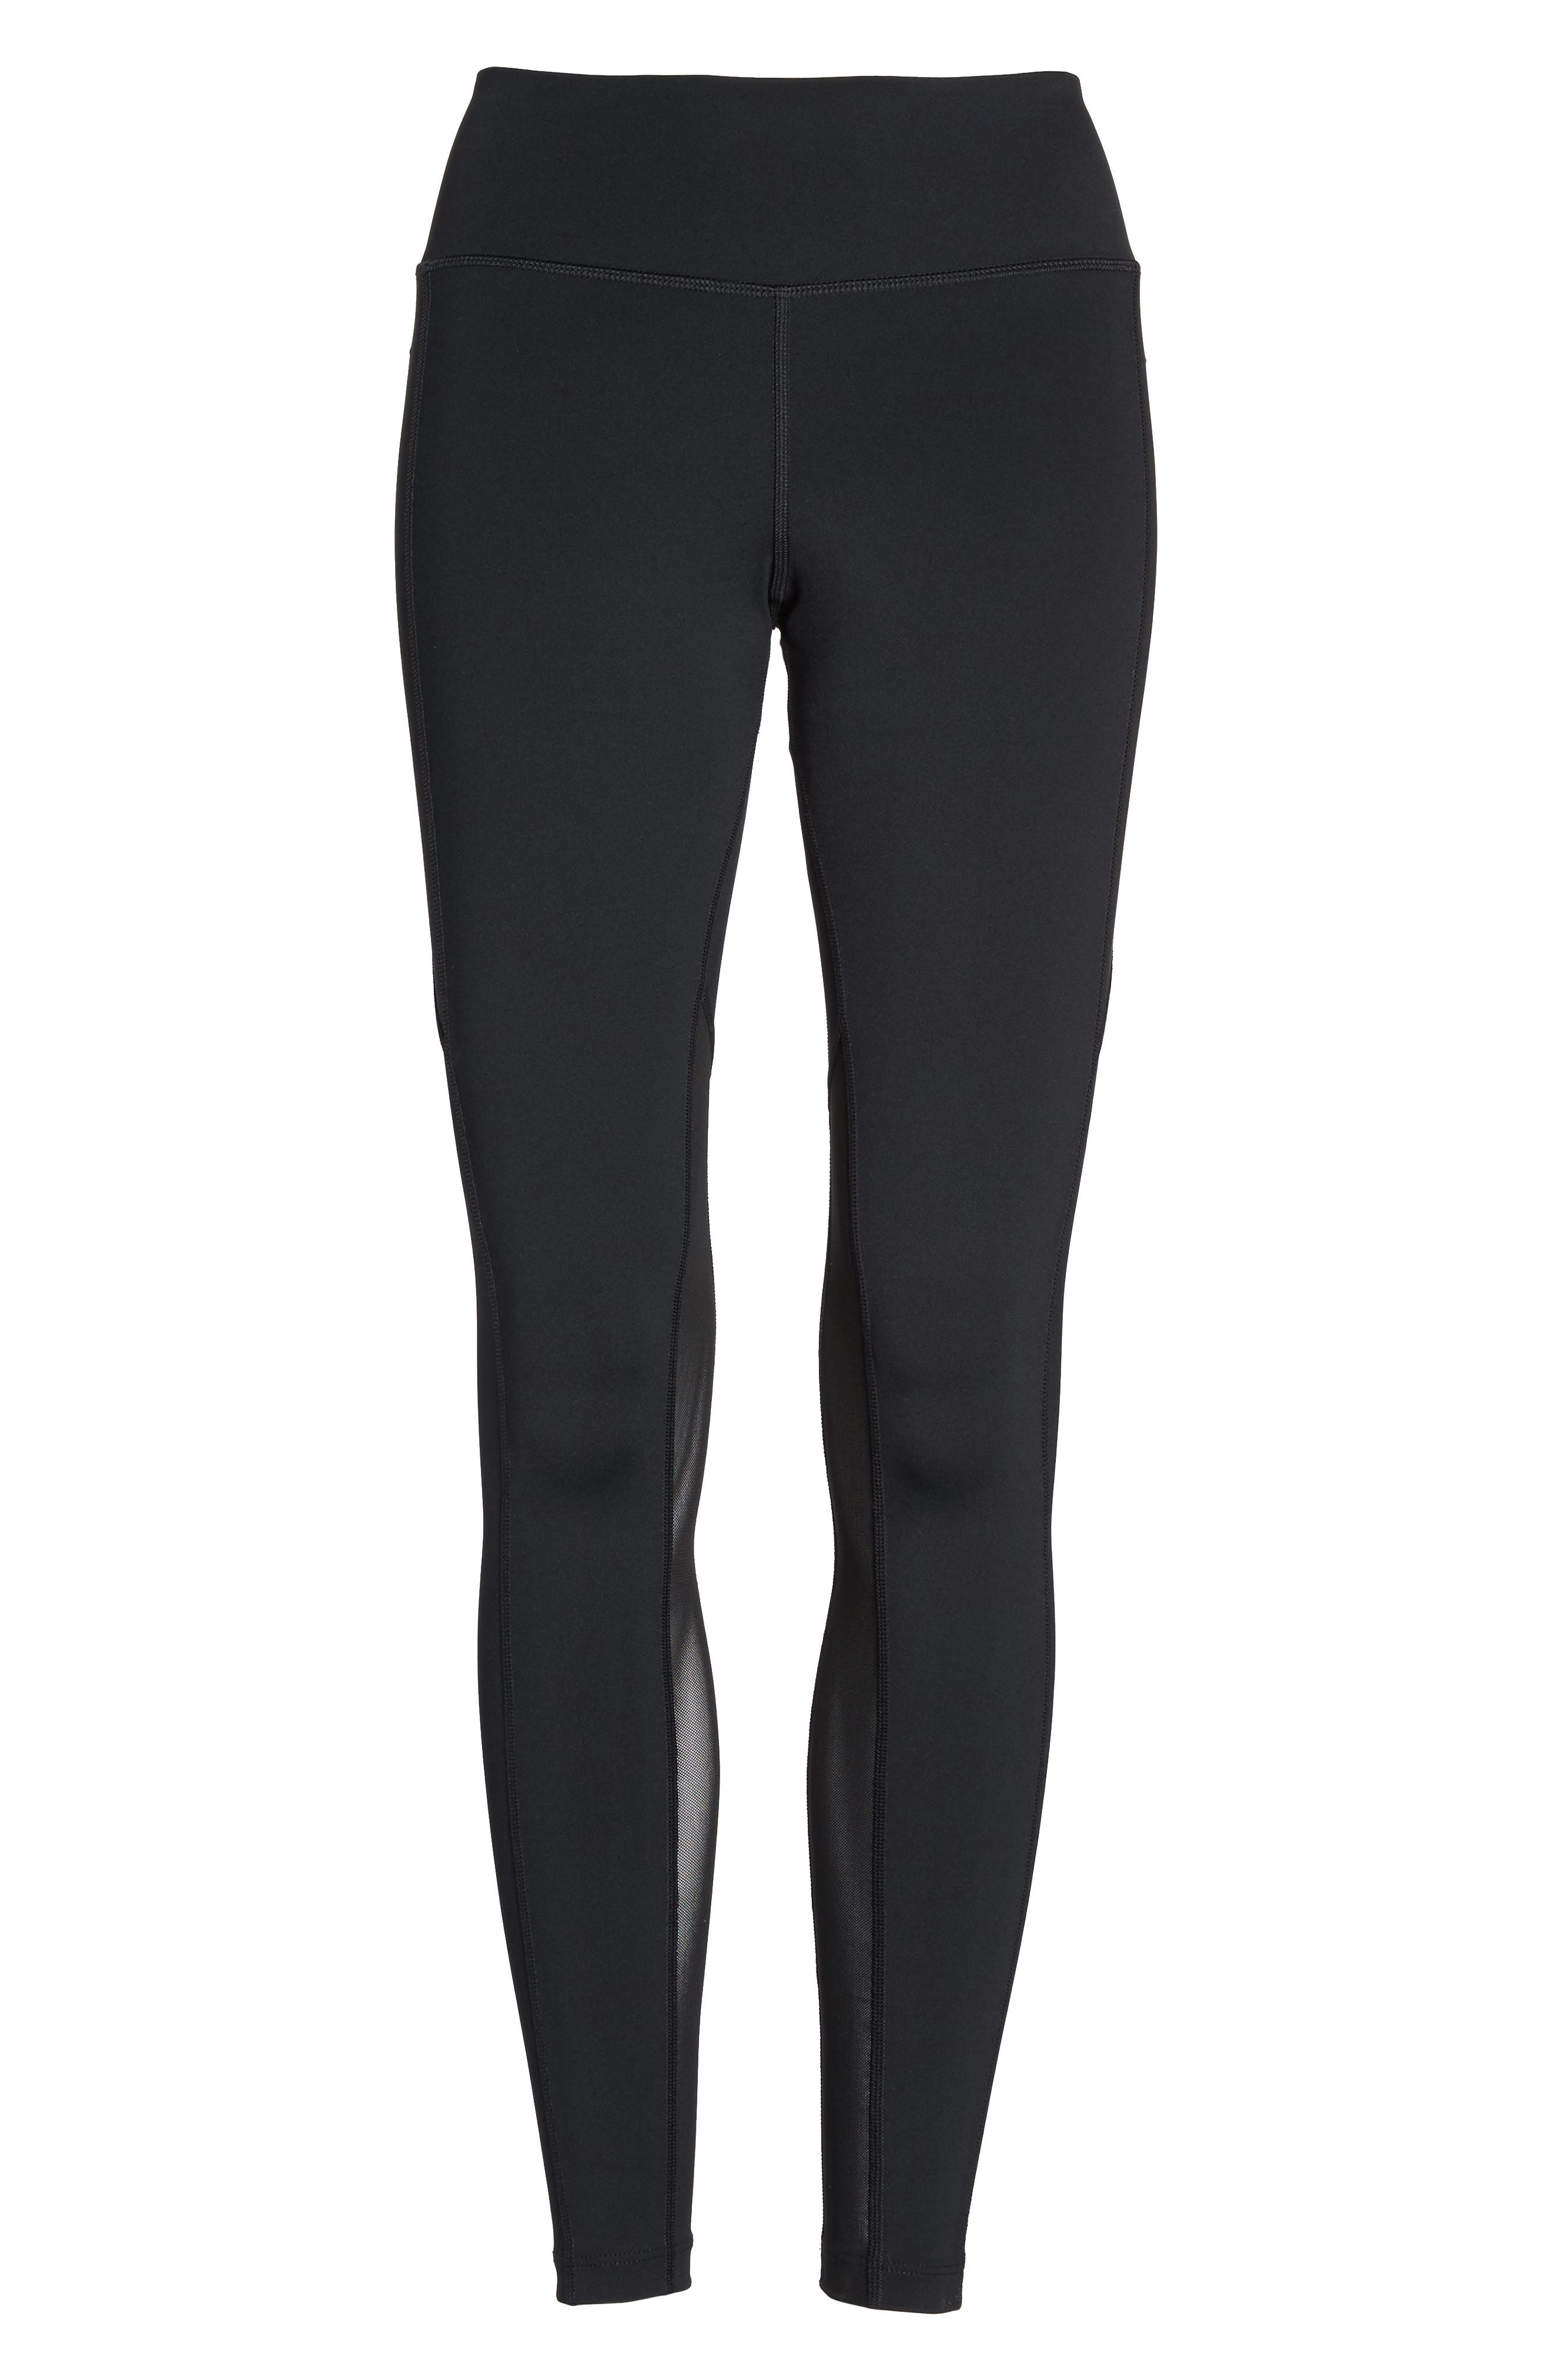 Power Pocket Lux Ankle Tights,                             Alternate thumbnail 7, color,                             BLACK/ BLACK/ CLEAR